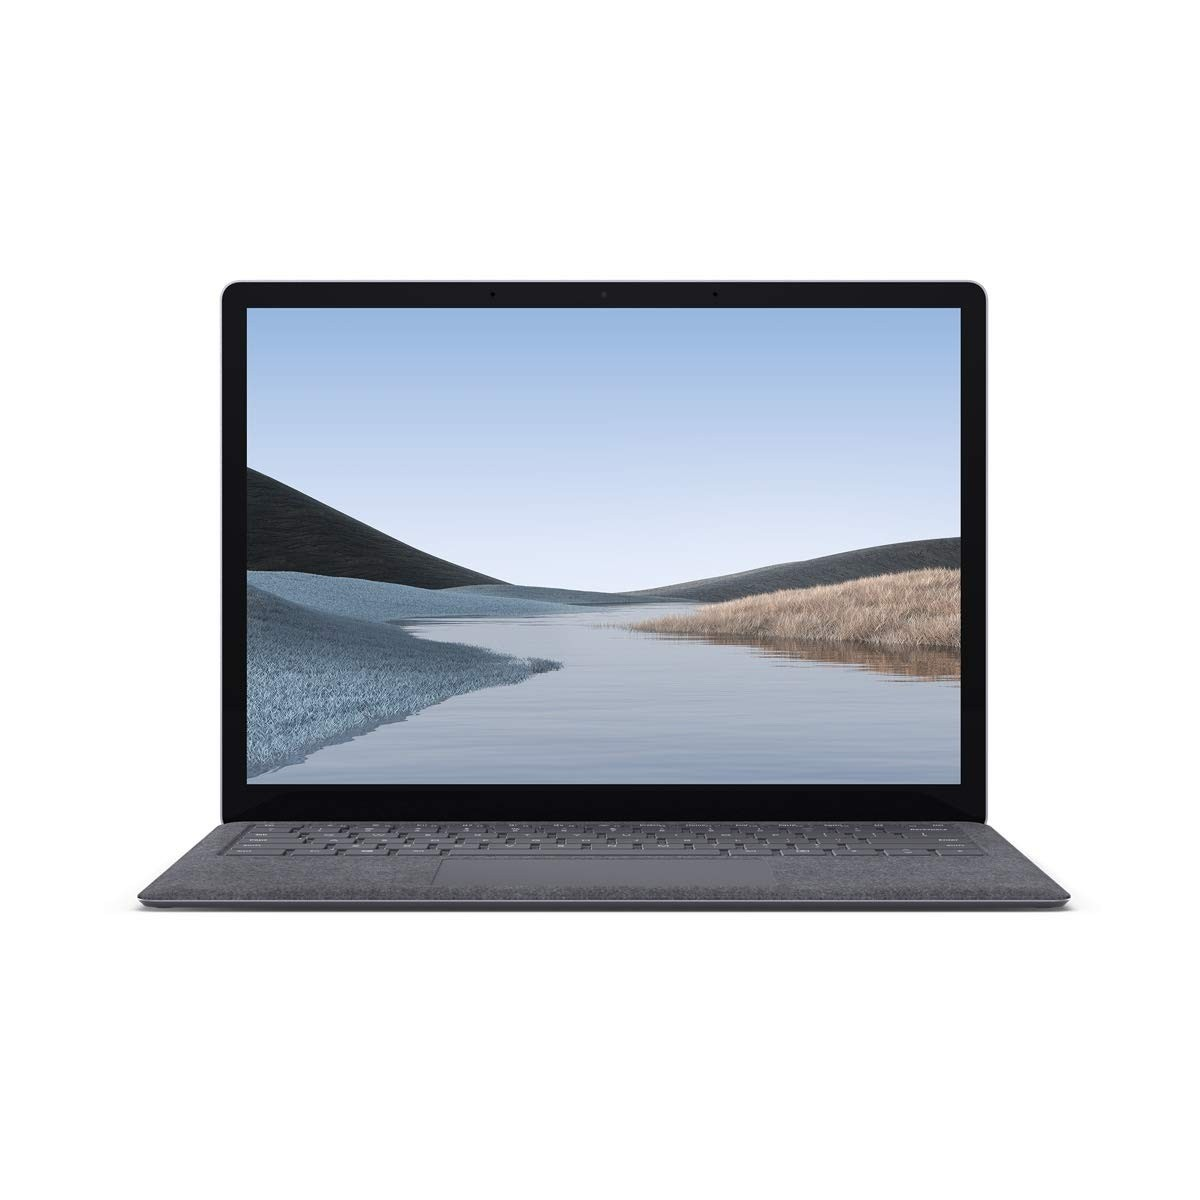 Refurbished laptops & desktops - Microsoft Surface Laptop 3 Intel Core I5 10TH Gen 13.5 Inch Touchscreen Laptop (8GB/128GB SSD/Windows 10 Home/Integrated Graphics/Platinum/1.265Kg), Vgy-00021